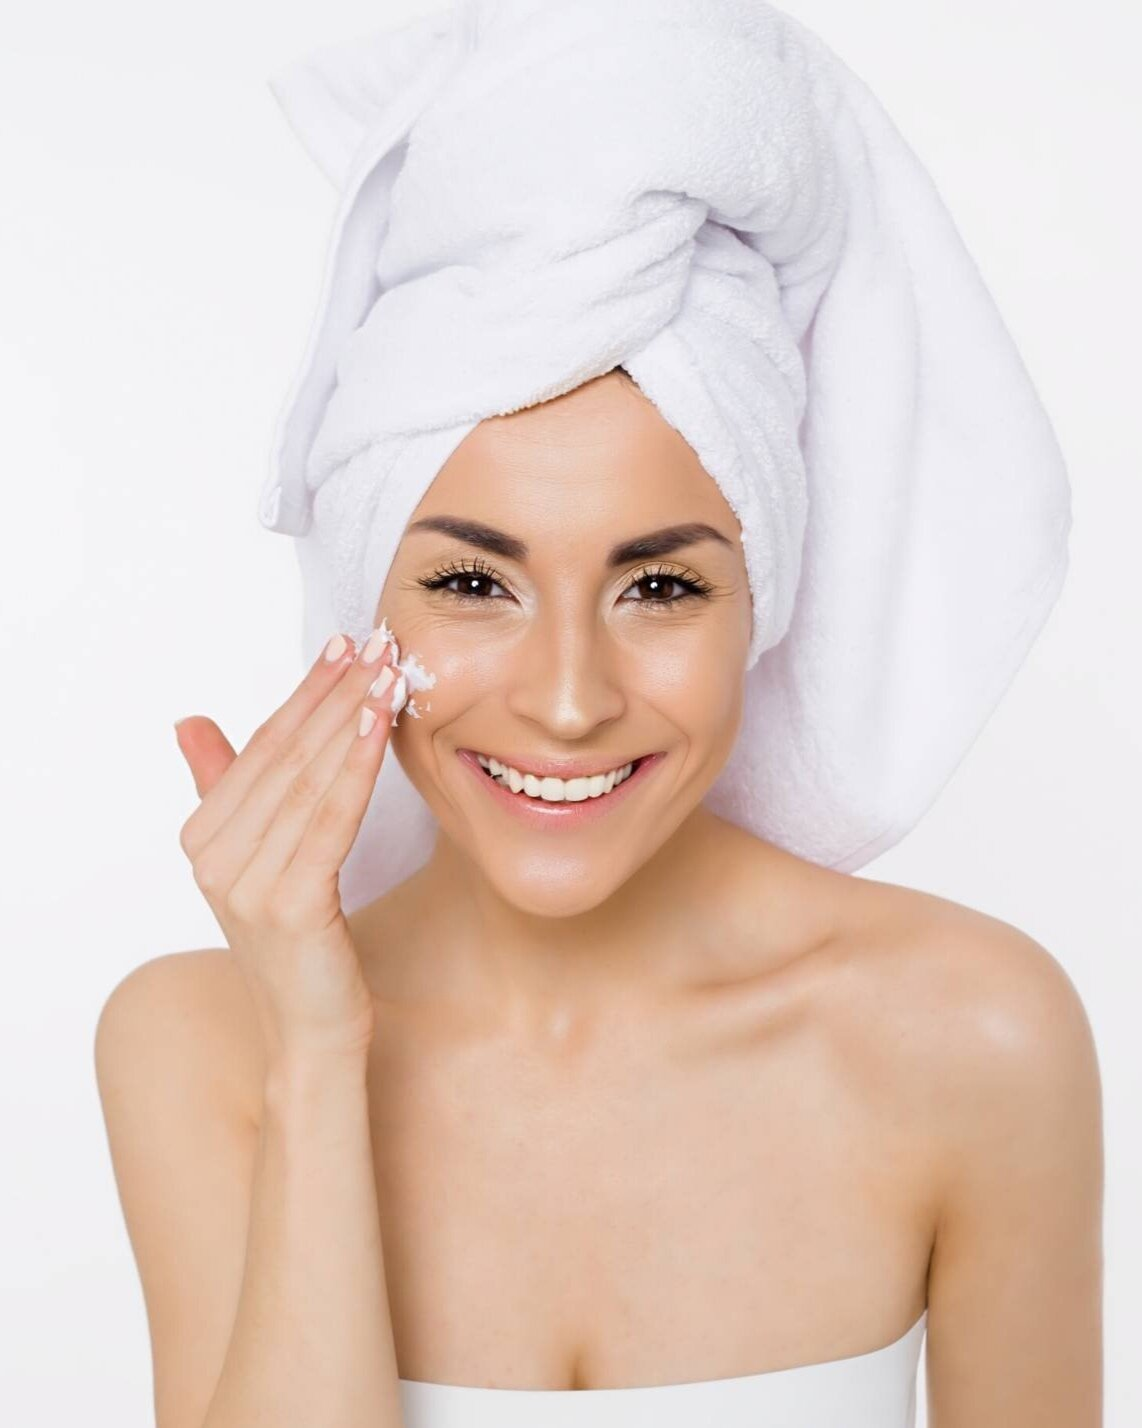 Winter Skincare Tips To Keep Your Face Glowing